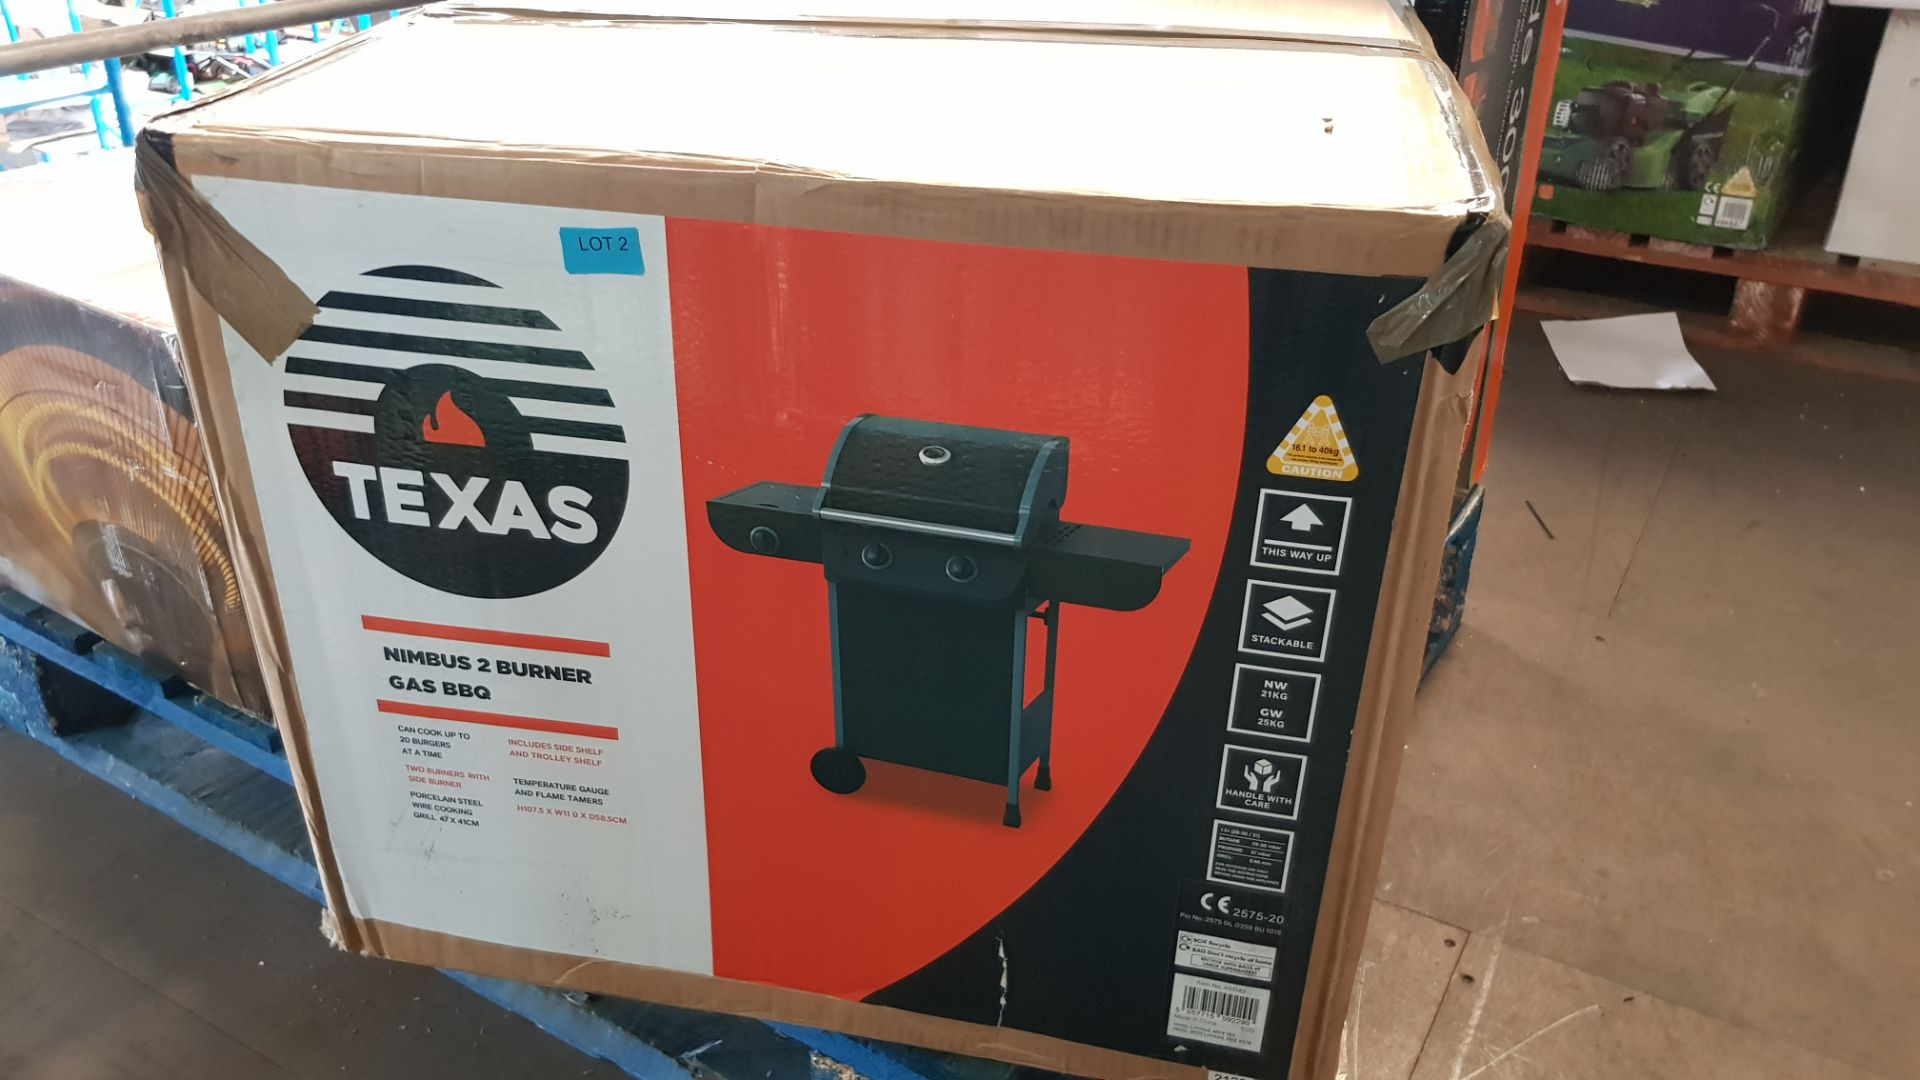 (P8) 1x Texas Nimbus 2 Burner Gas BBQ RRP £80. Contents Appear As New – Unused & Not Previously Re - Image 3 of 6